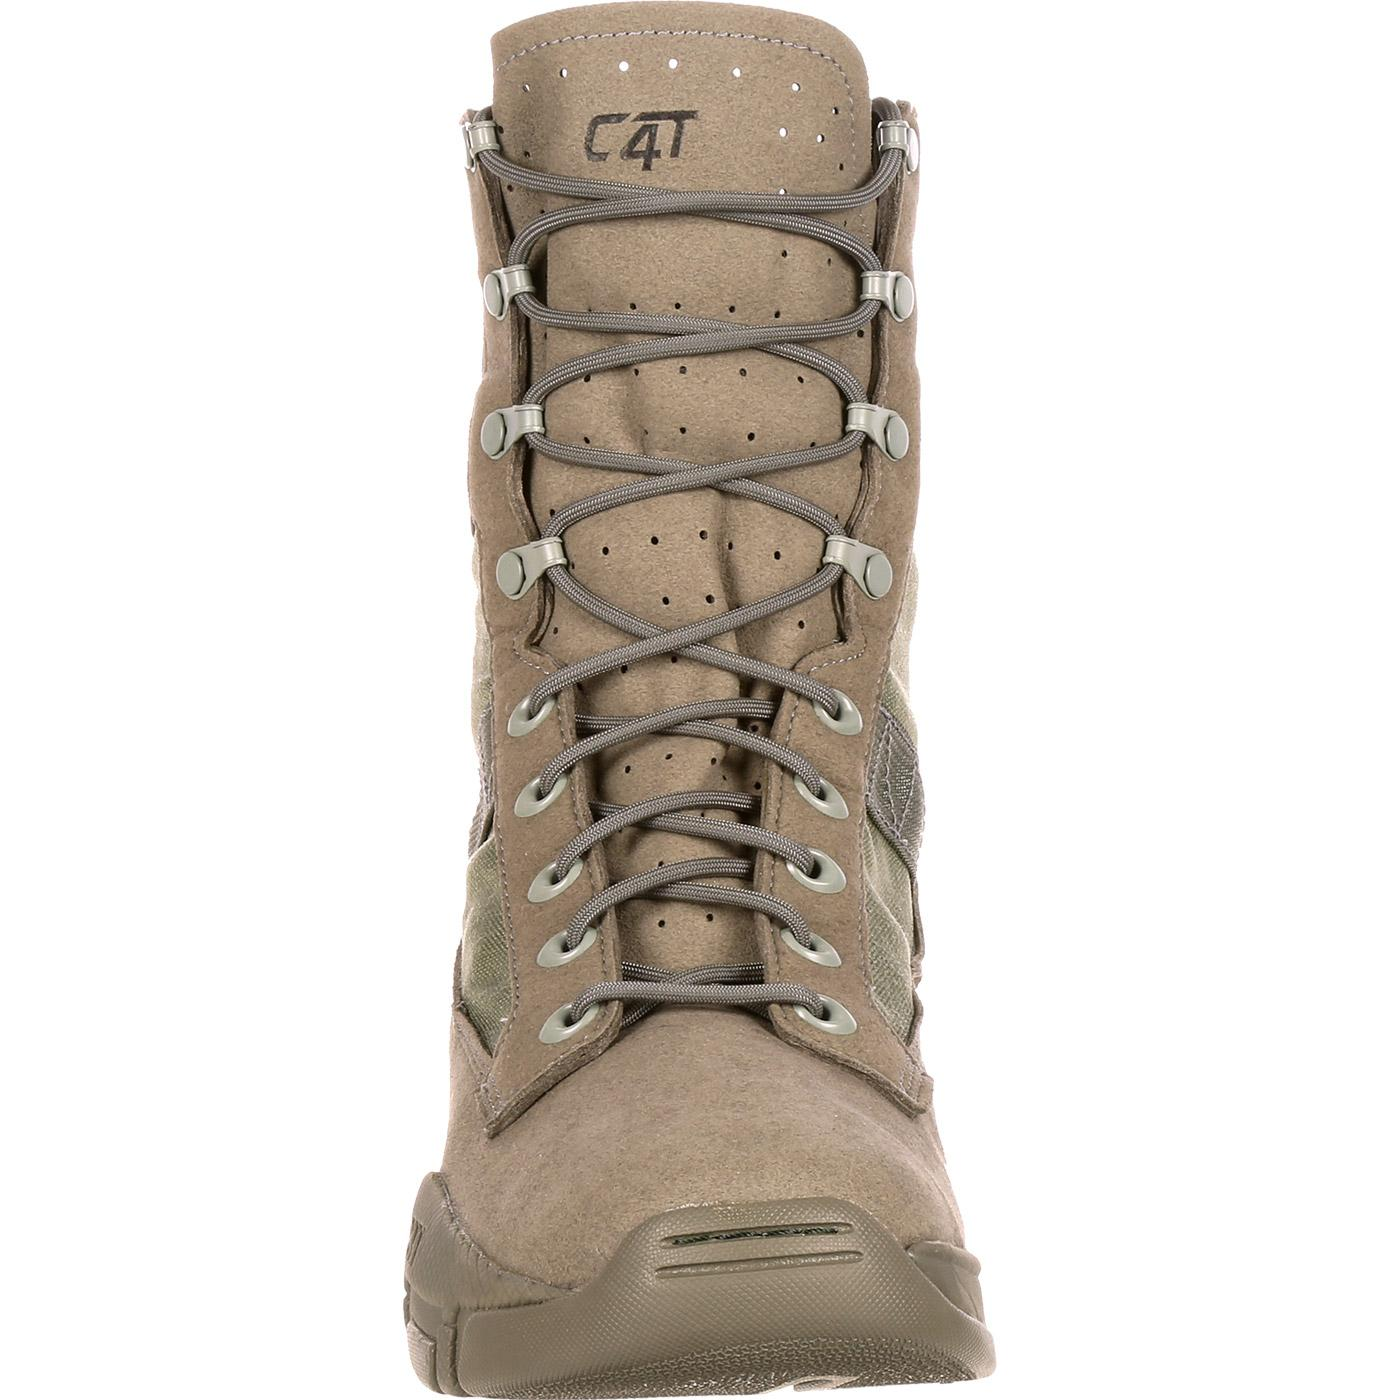 9c417d513e4a7 Rocky C4T Trainer Military Duty Boot